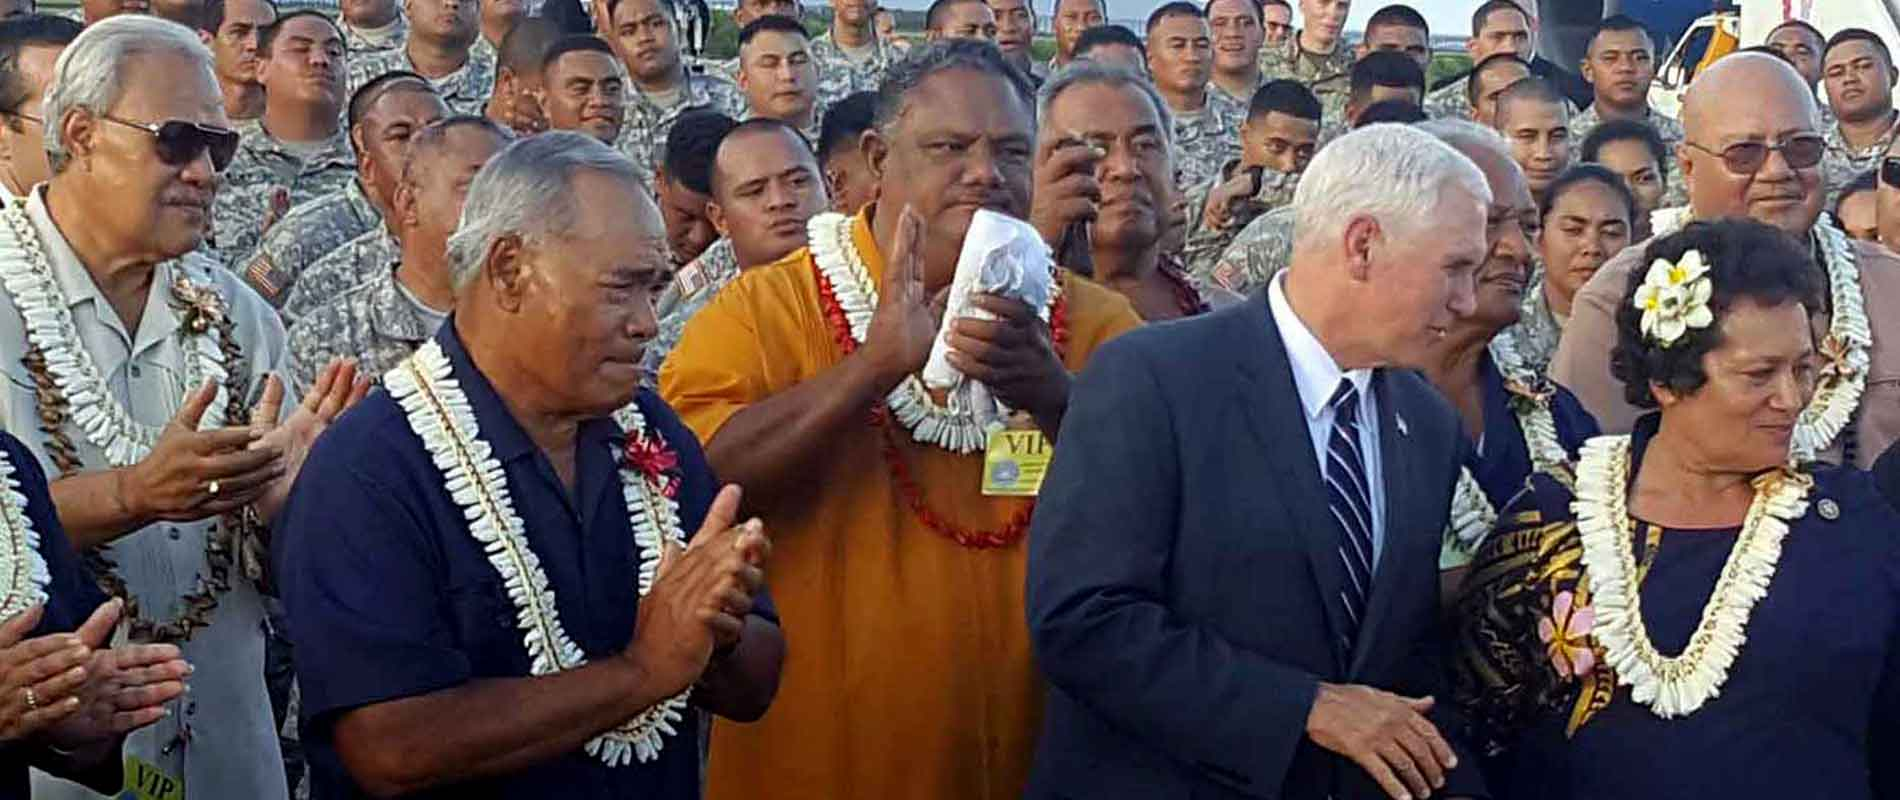 with-pence-in-pago